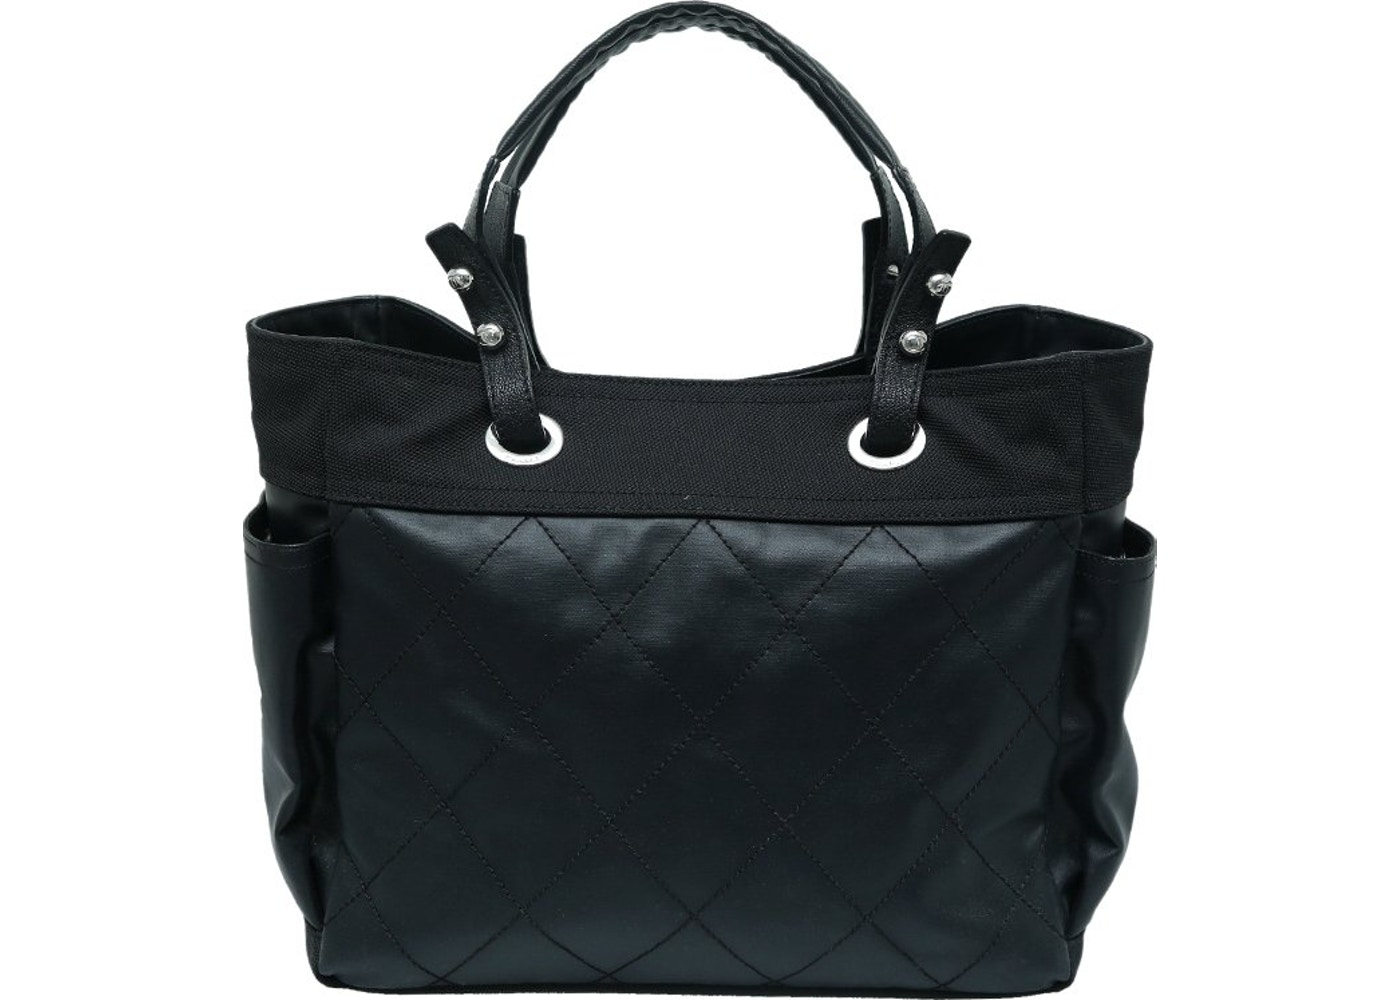 67e92fd00177 Chanel Shopping Tote Paris Biarritz Quilted Coated Grand Black